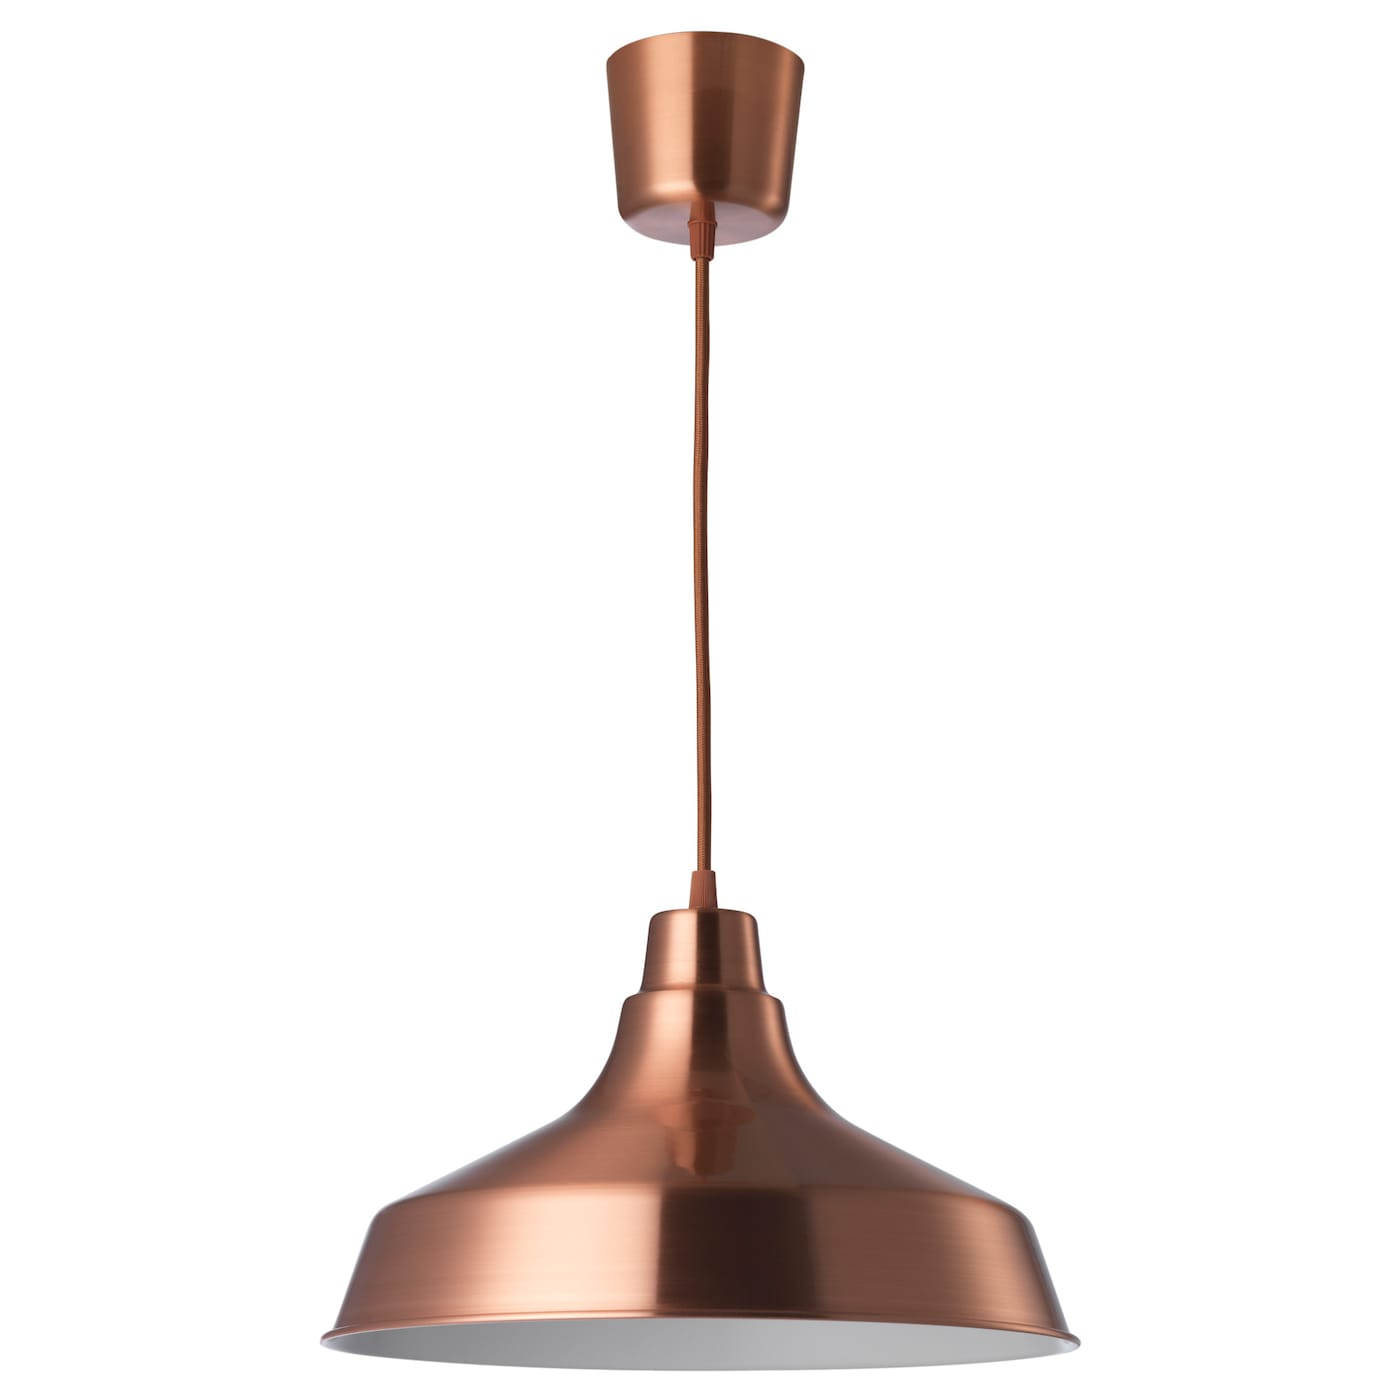 Vindkre pendant lamp copper colour 36 cm ikea ikea vindkre pendant lamp mozeypictures